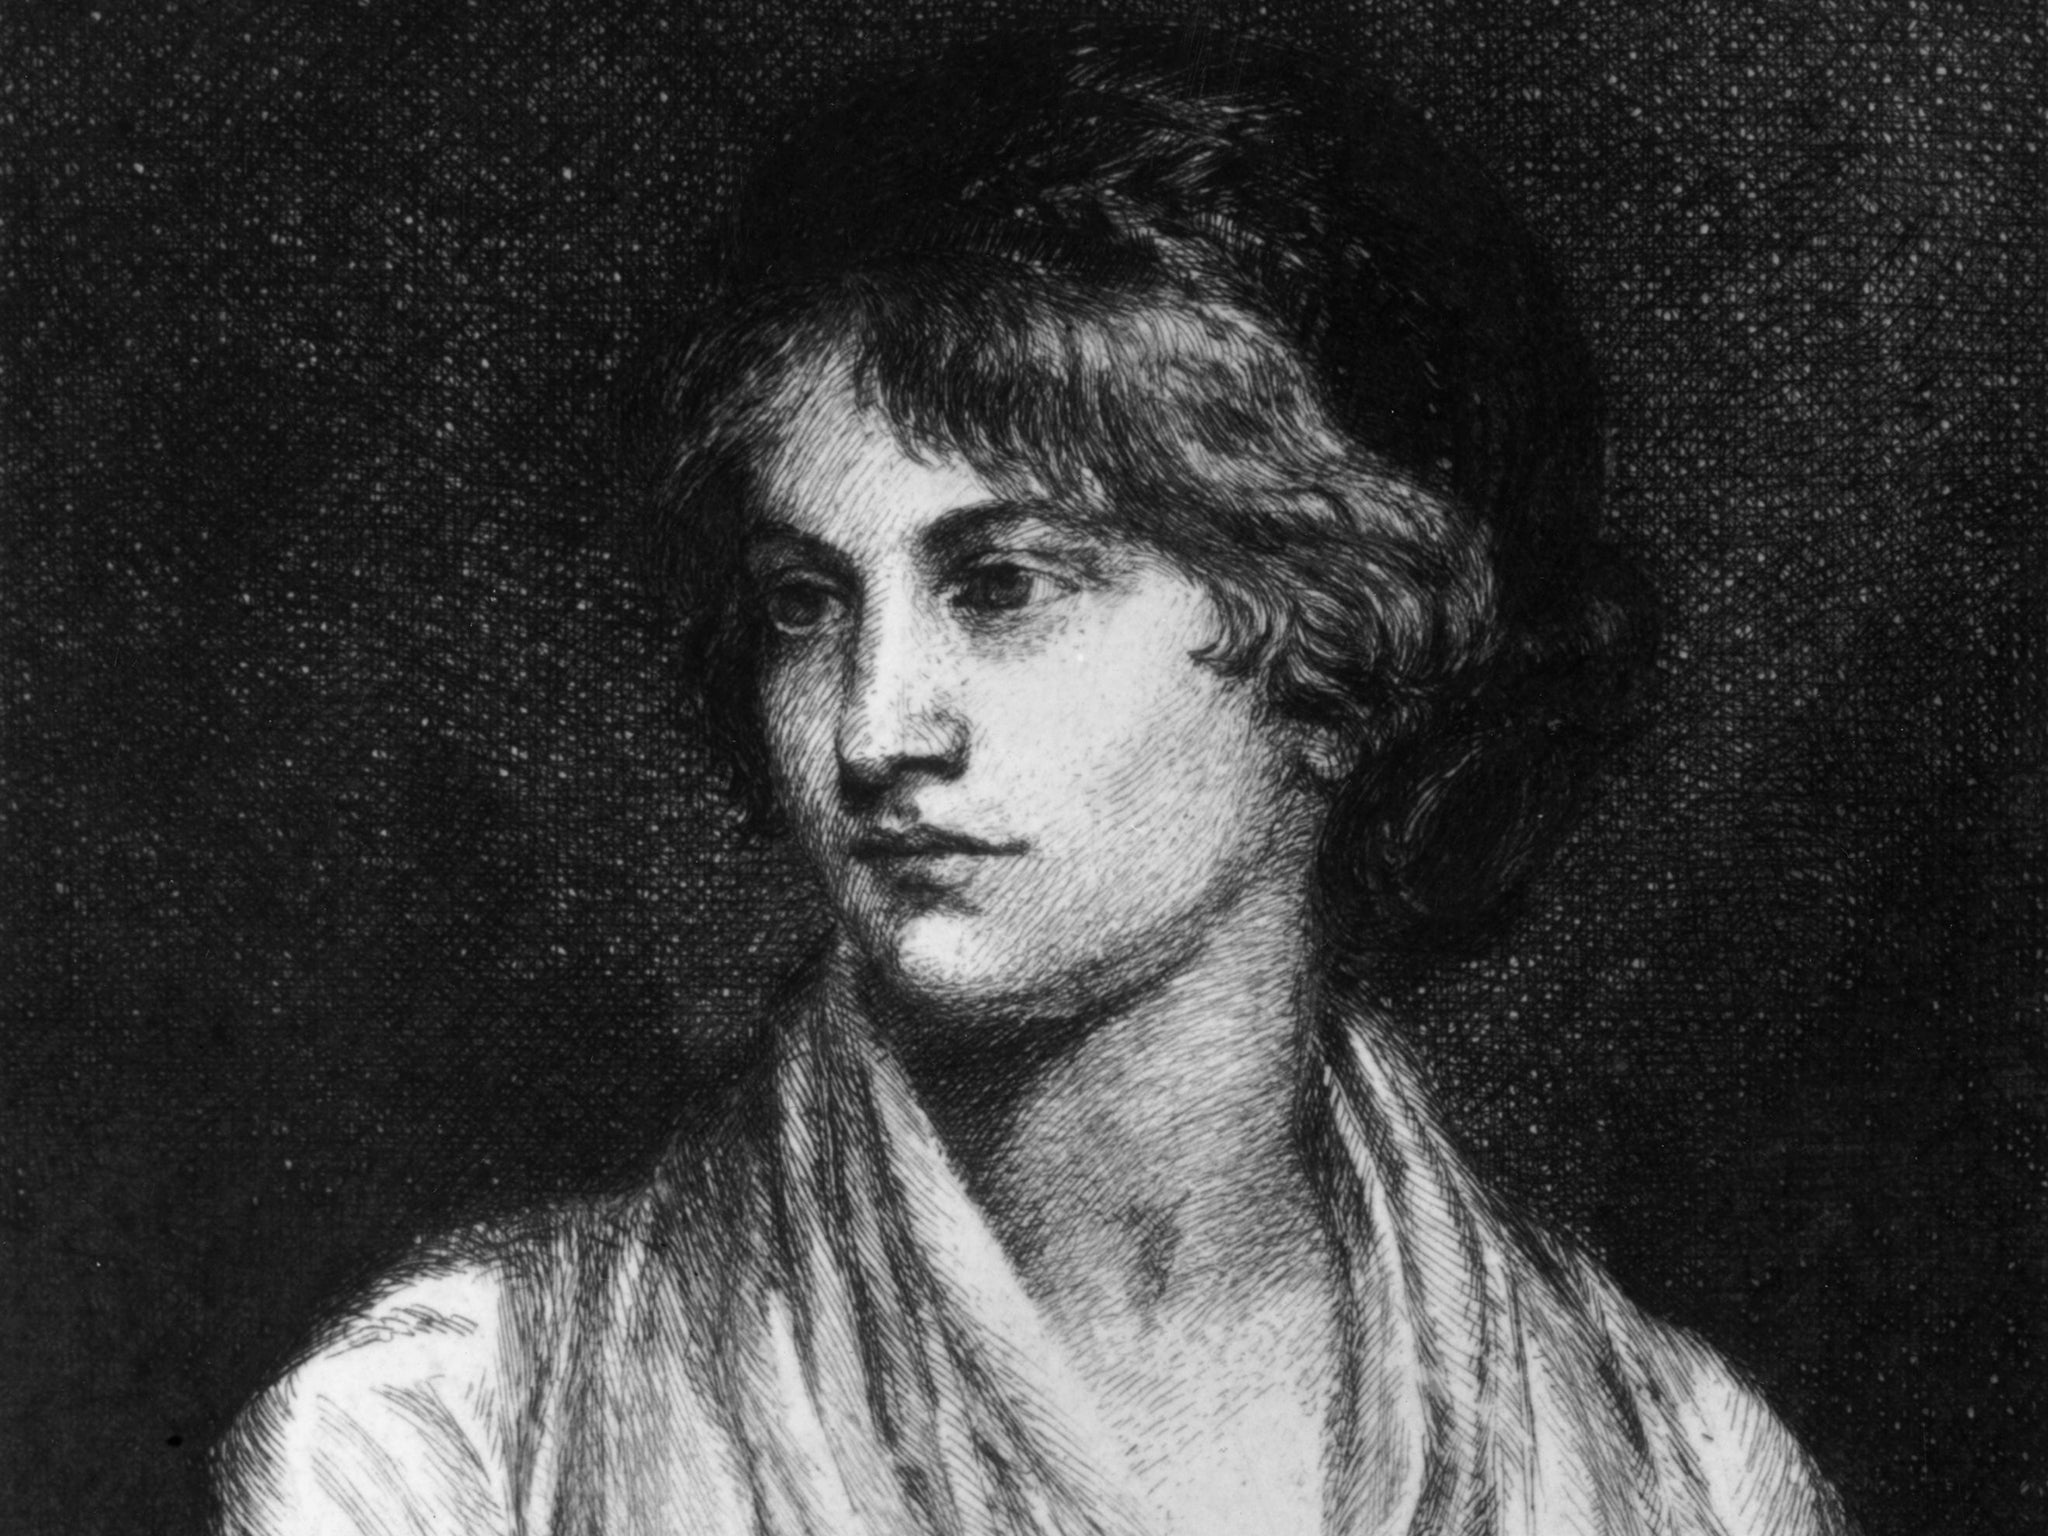 mary wollstonecraft frontrunner of feminism get a statue at mary wollstonecraft frontrunner of feminism get a statue at last the